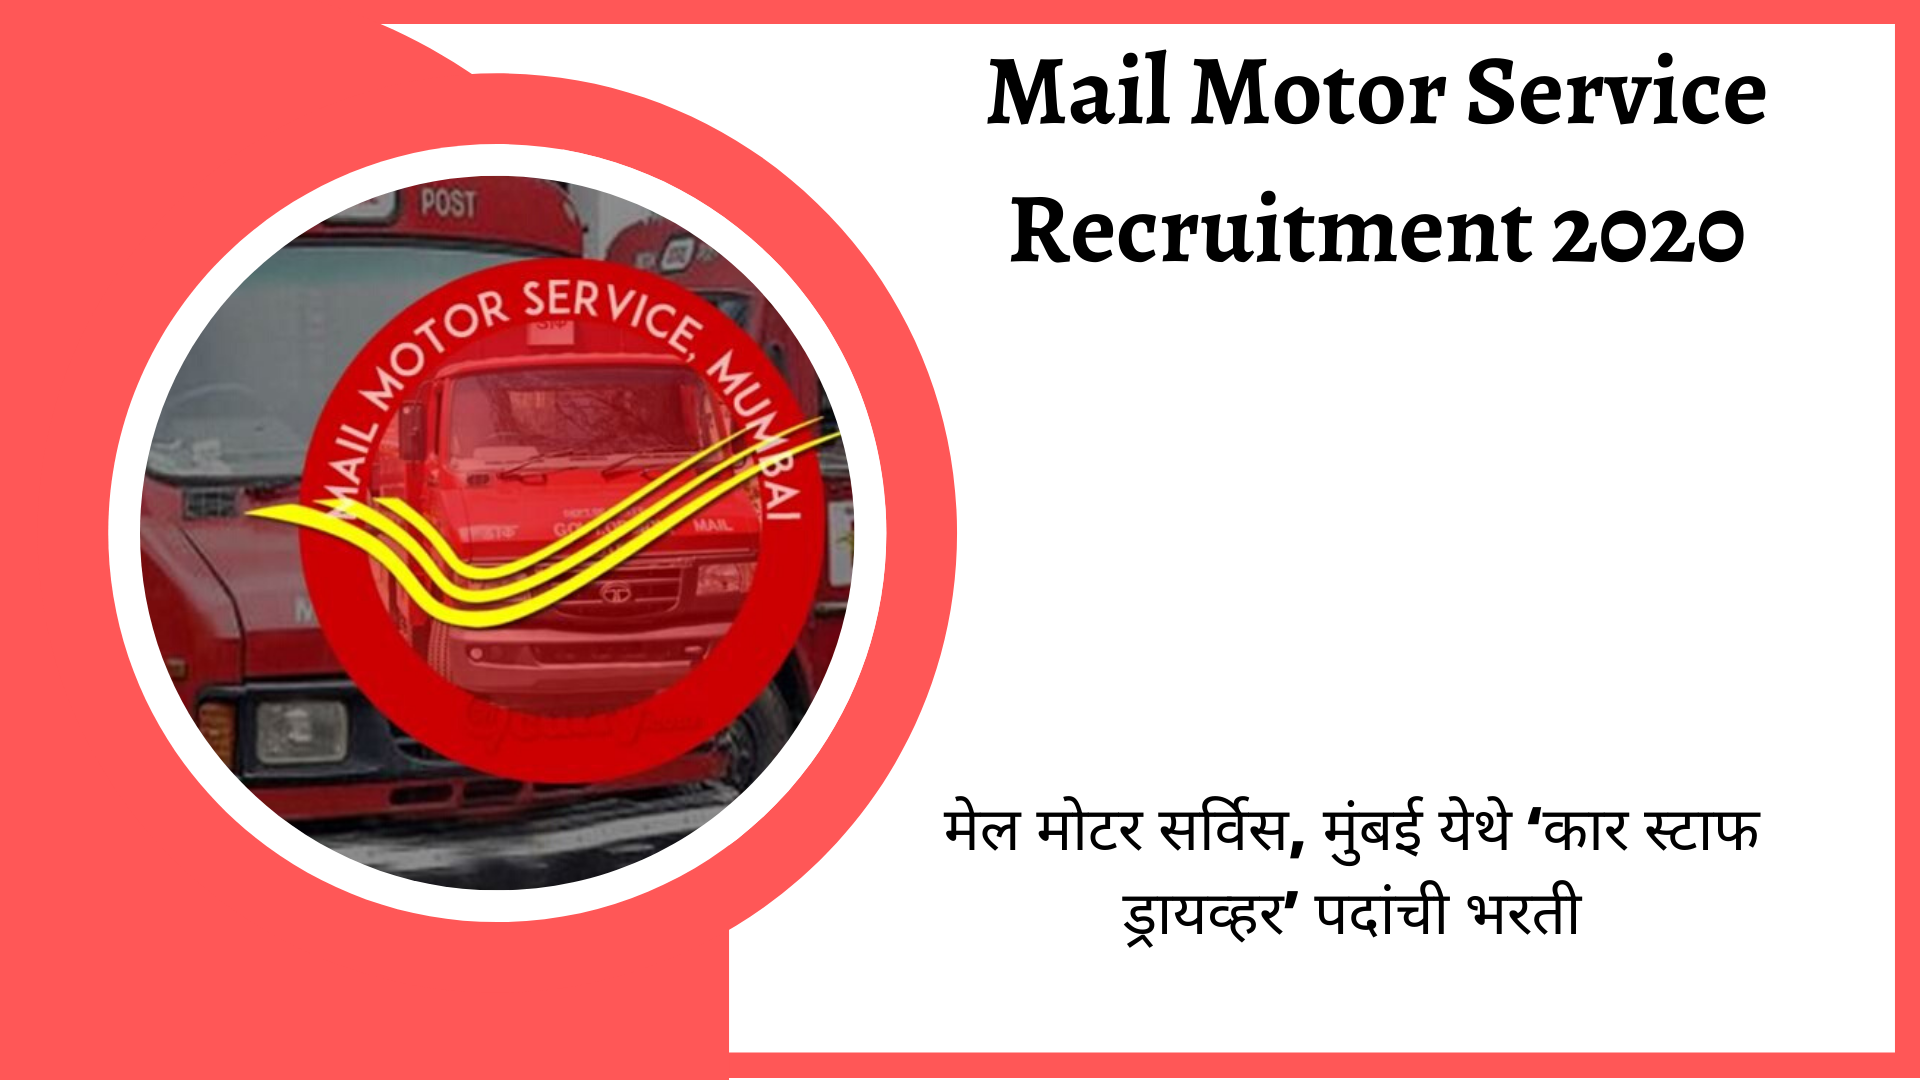 Mail Motor Service Recruitment 2020